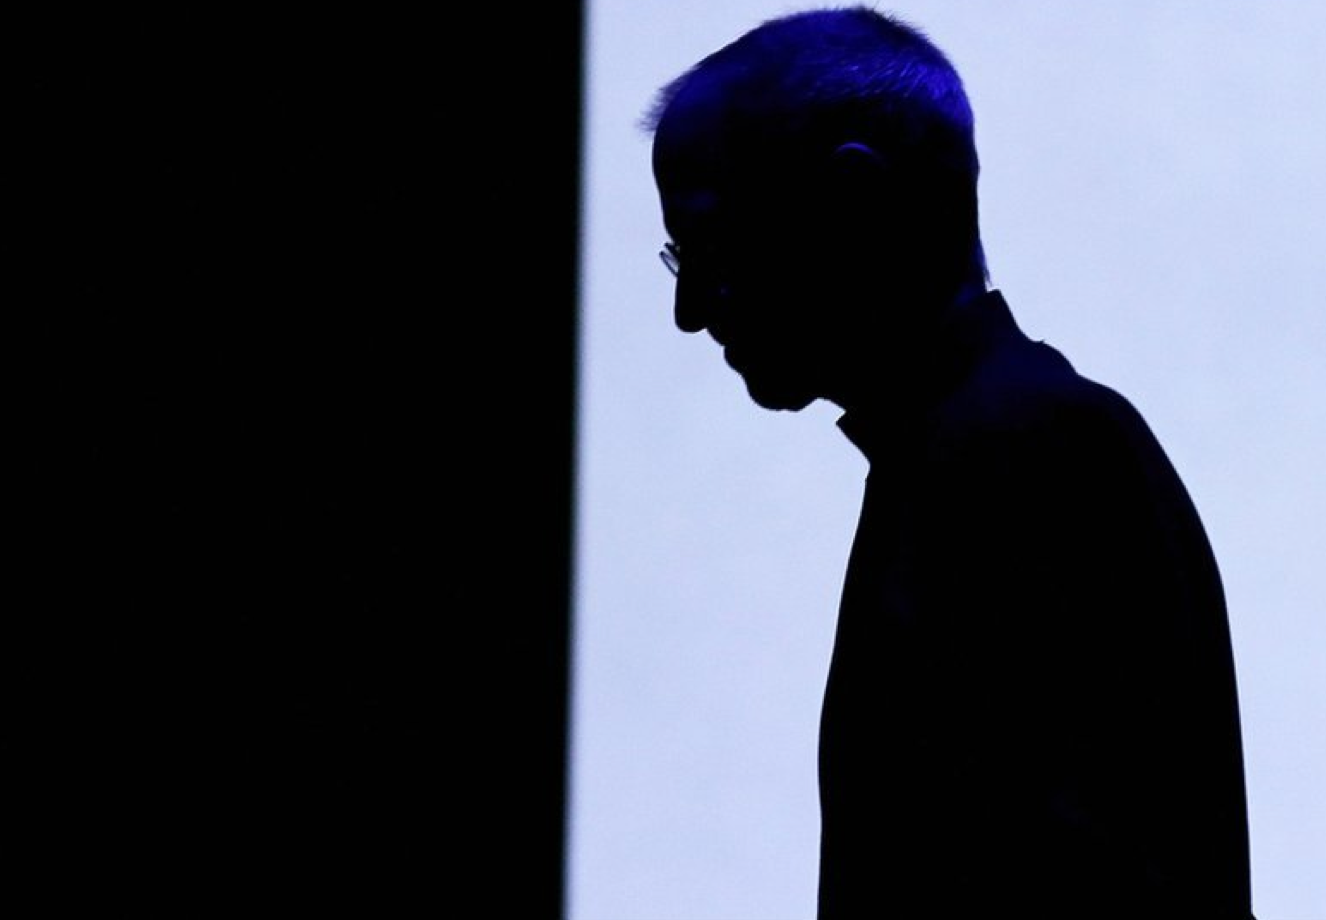 China continues to mourn Steve Jobs